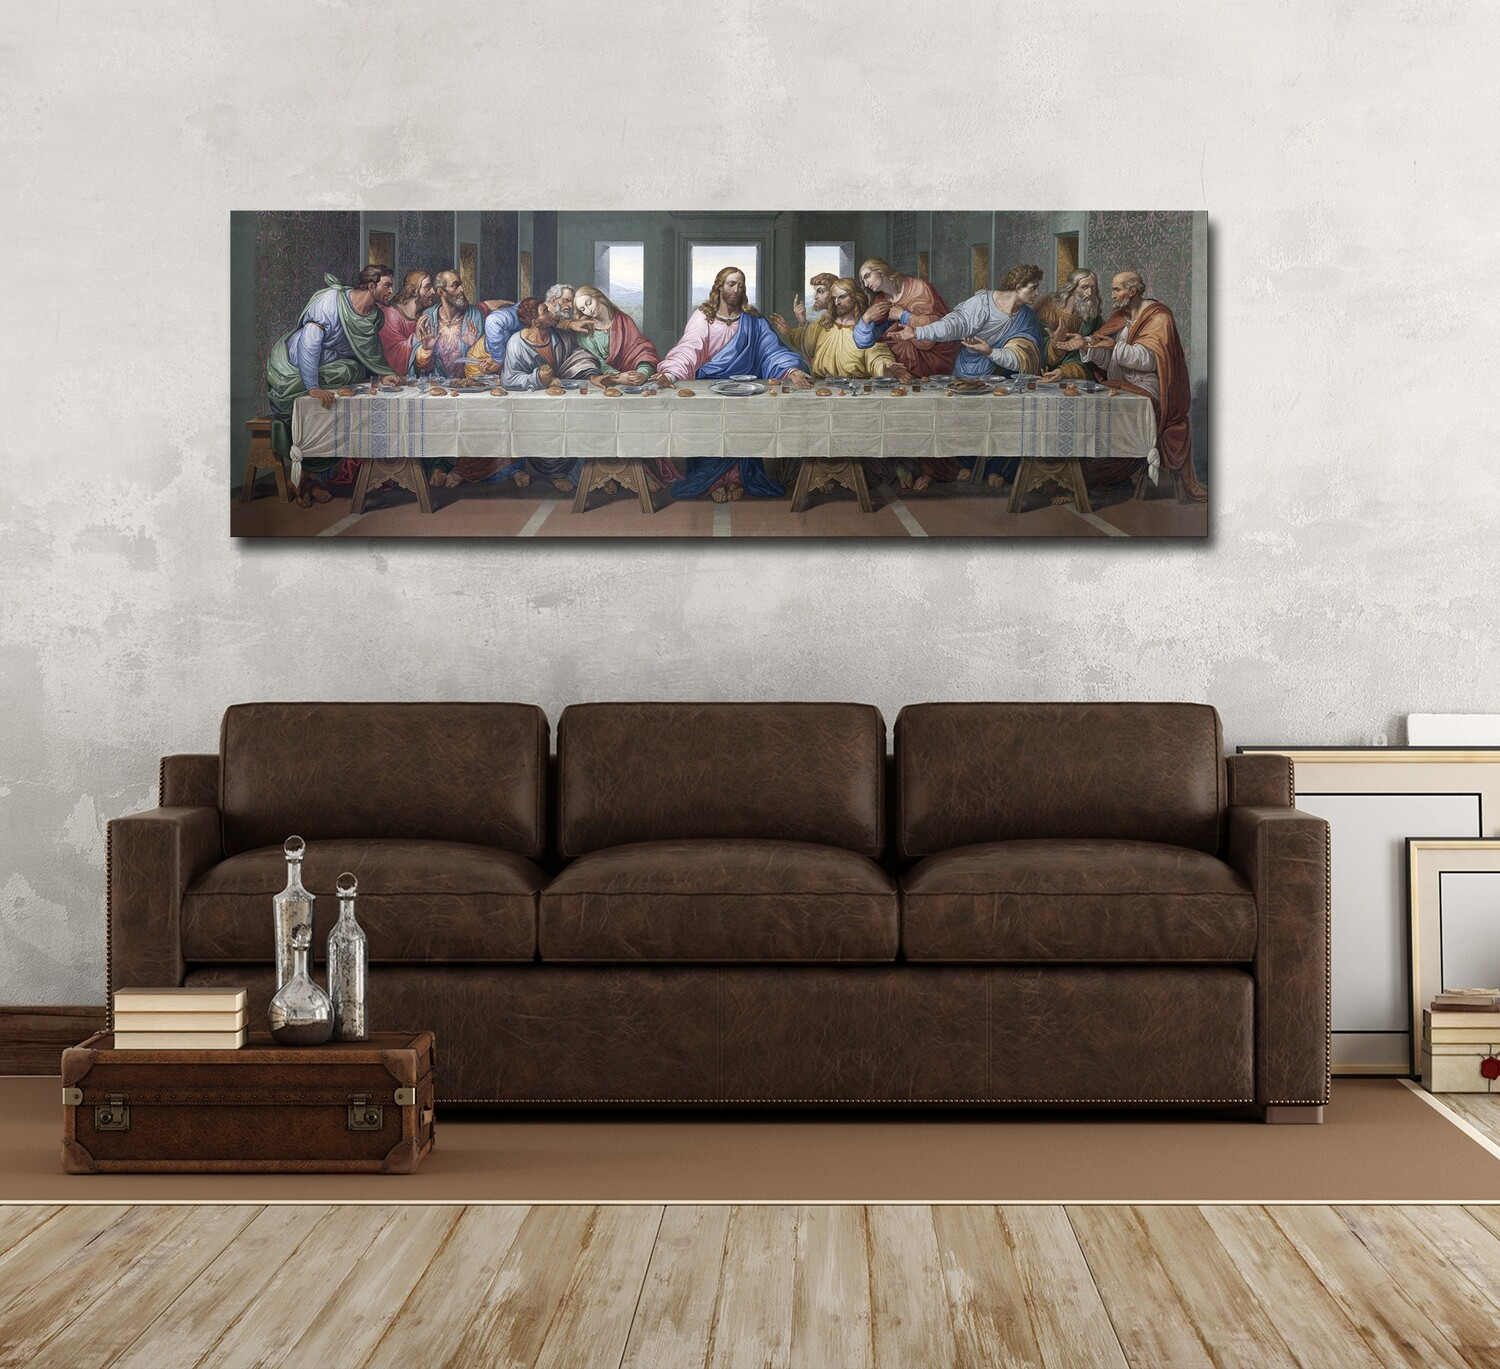 Jesus Last Supper Painting|Christian Wallart |Jesus Divine Mercy Picture Printed on Frameless Acrylic Glass | Ready To Hang